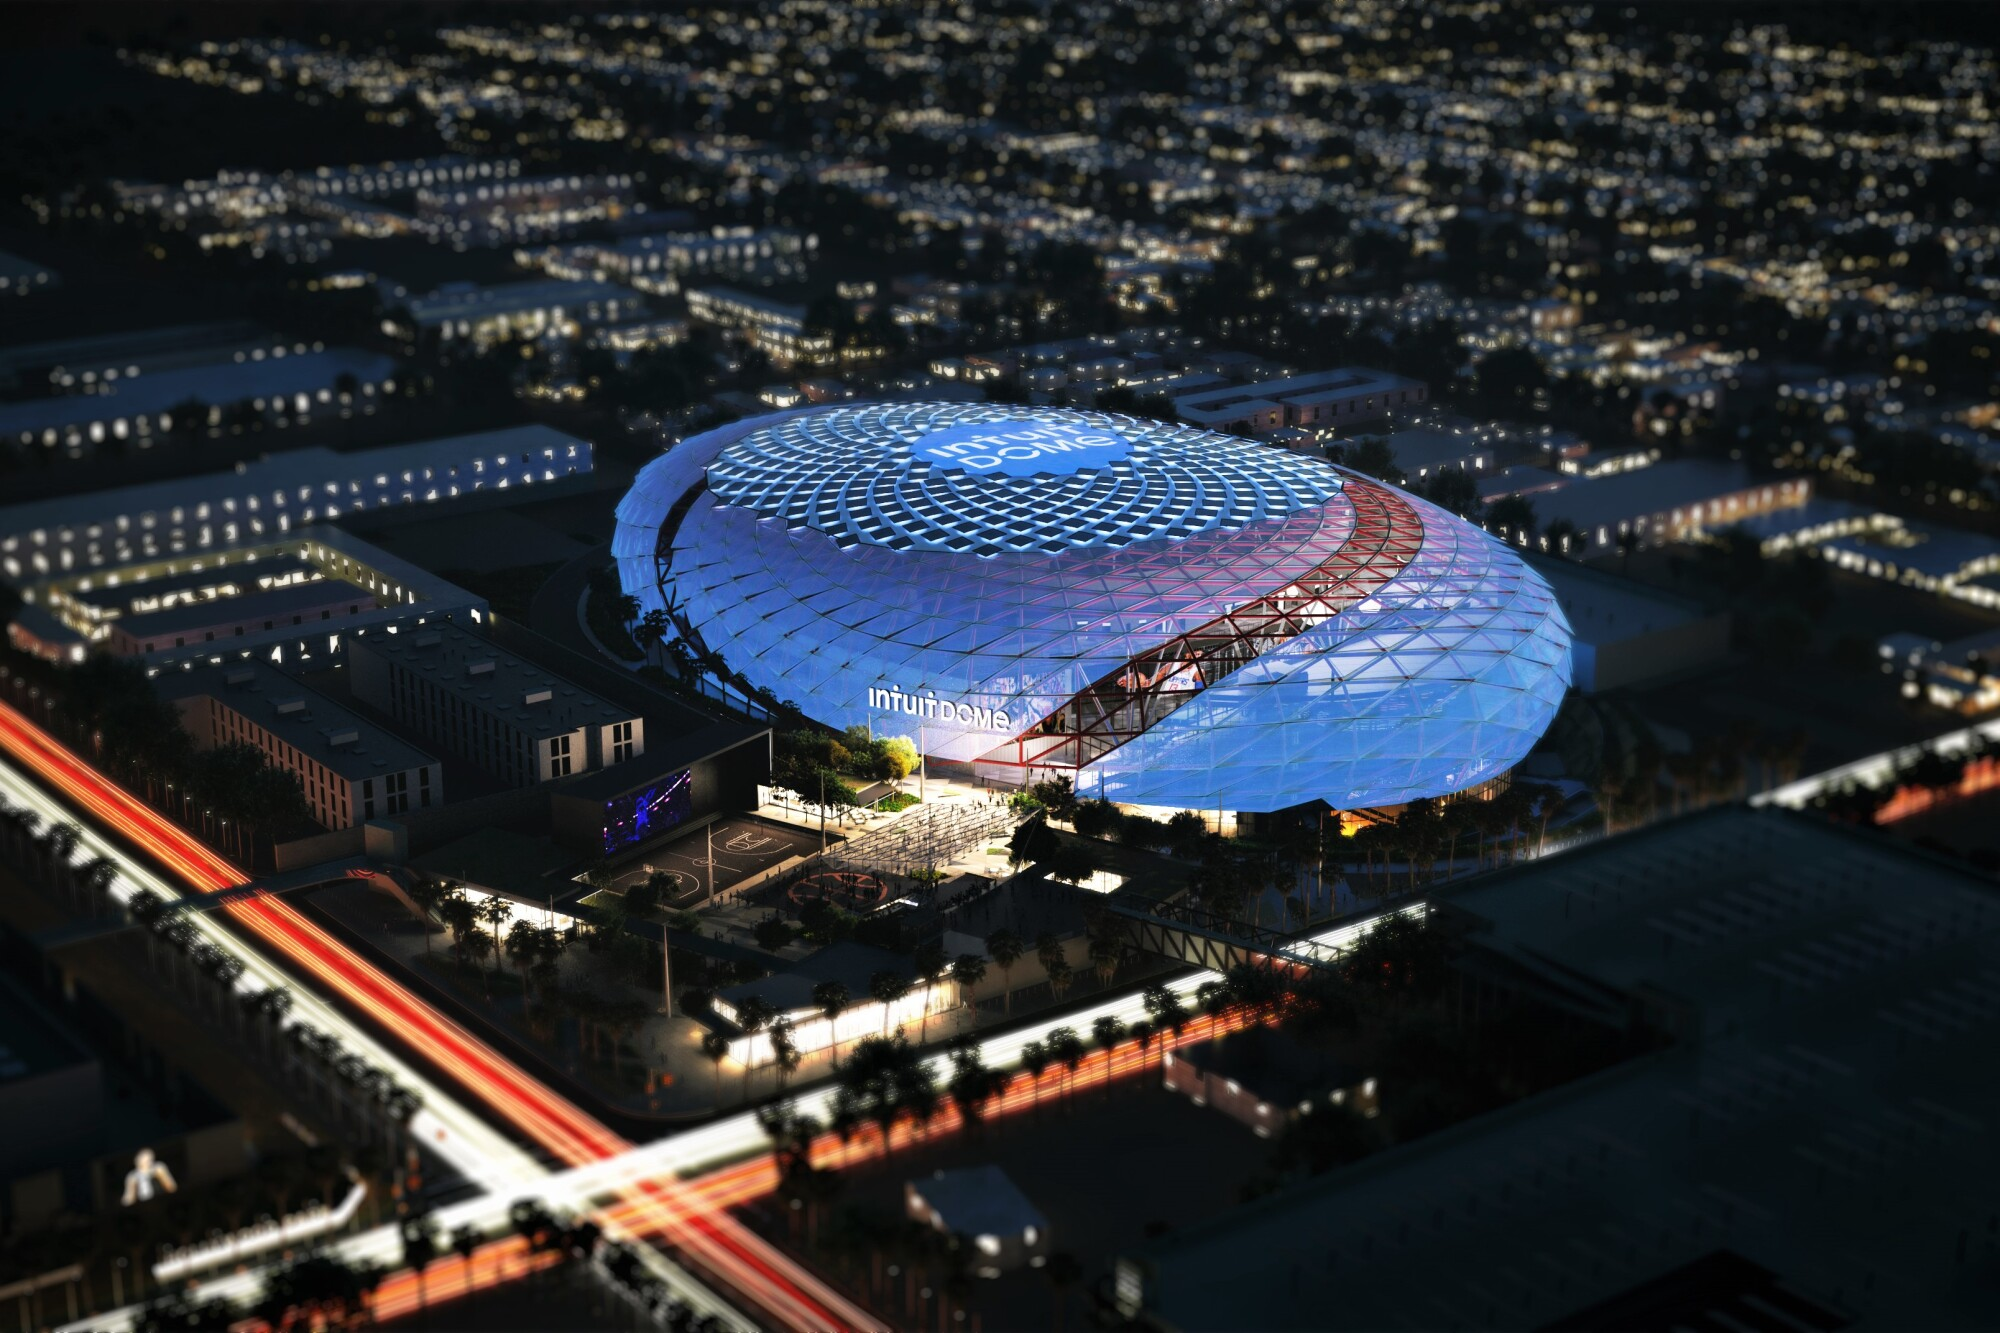 An artist's rendering shows an aerial view of the Clippers' news arena, The Intuit Dome, at night.